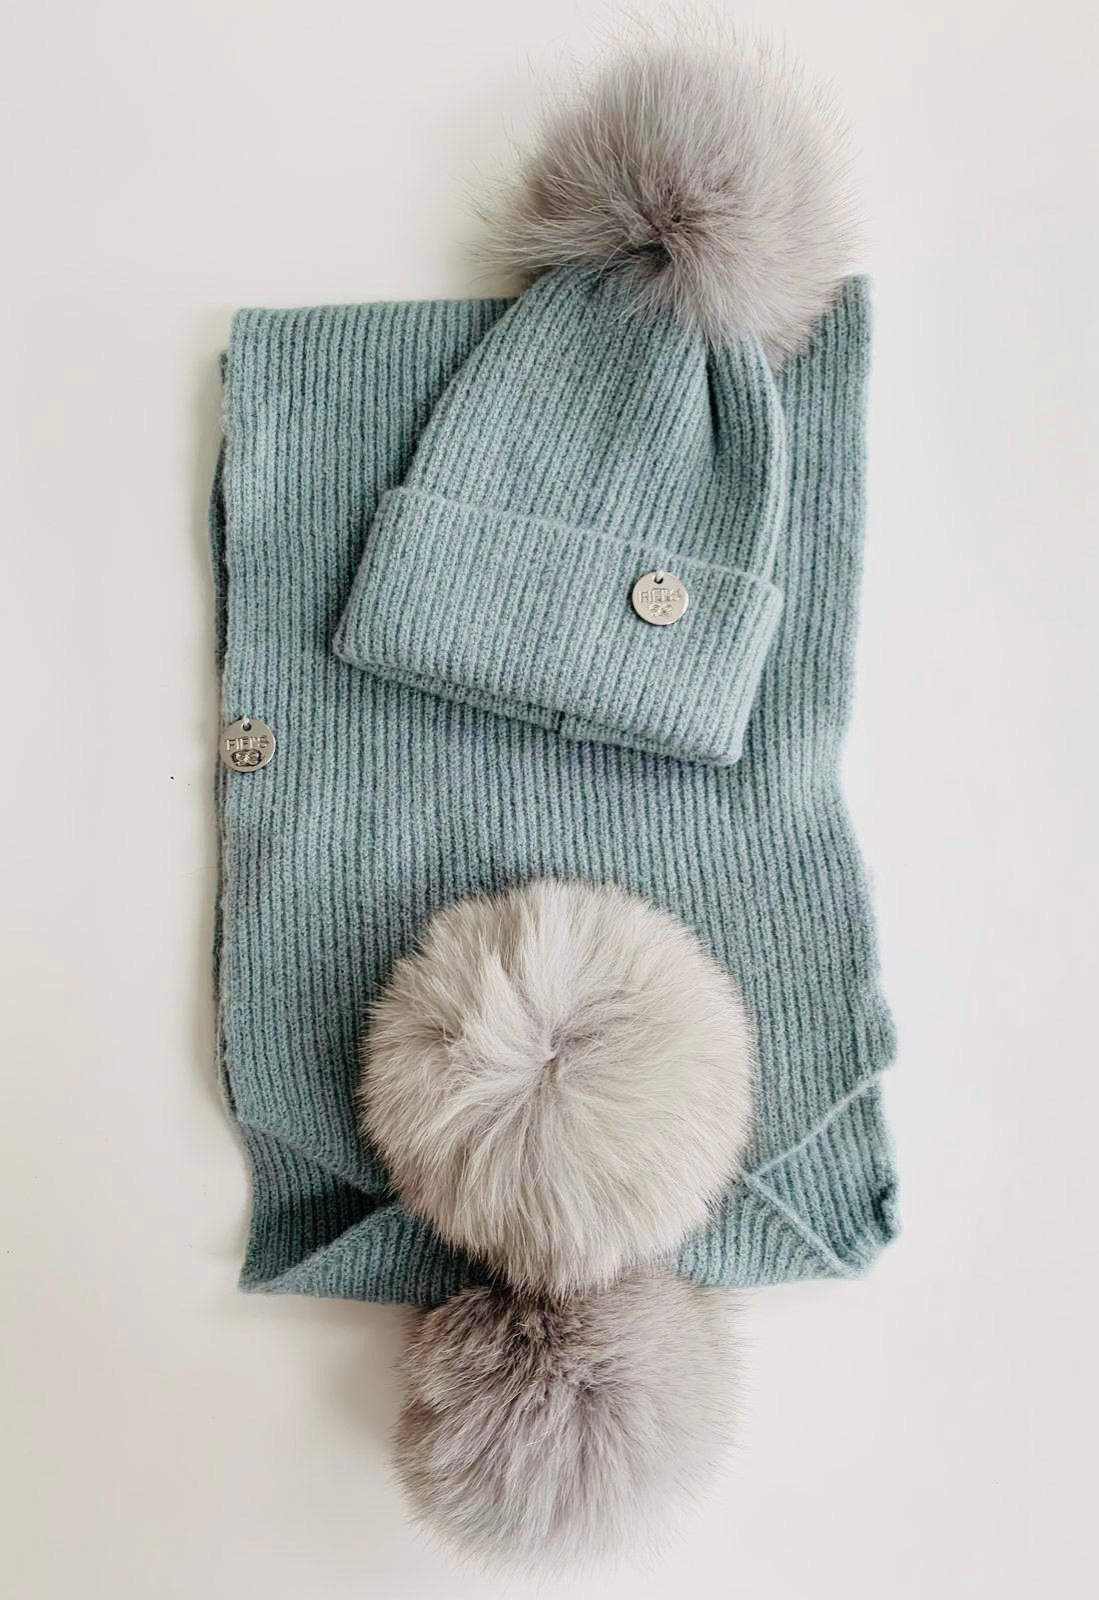 Children's hat and scarf set - Grey green